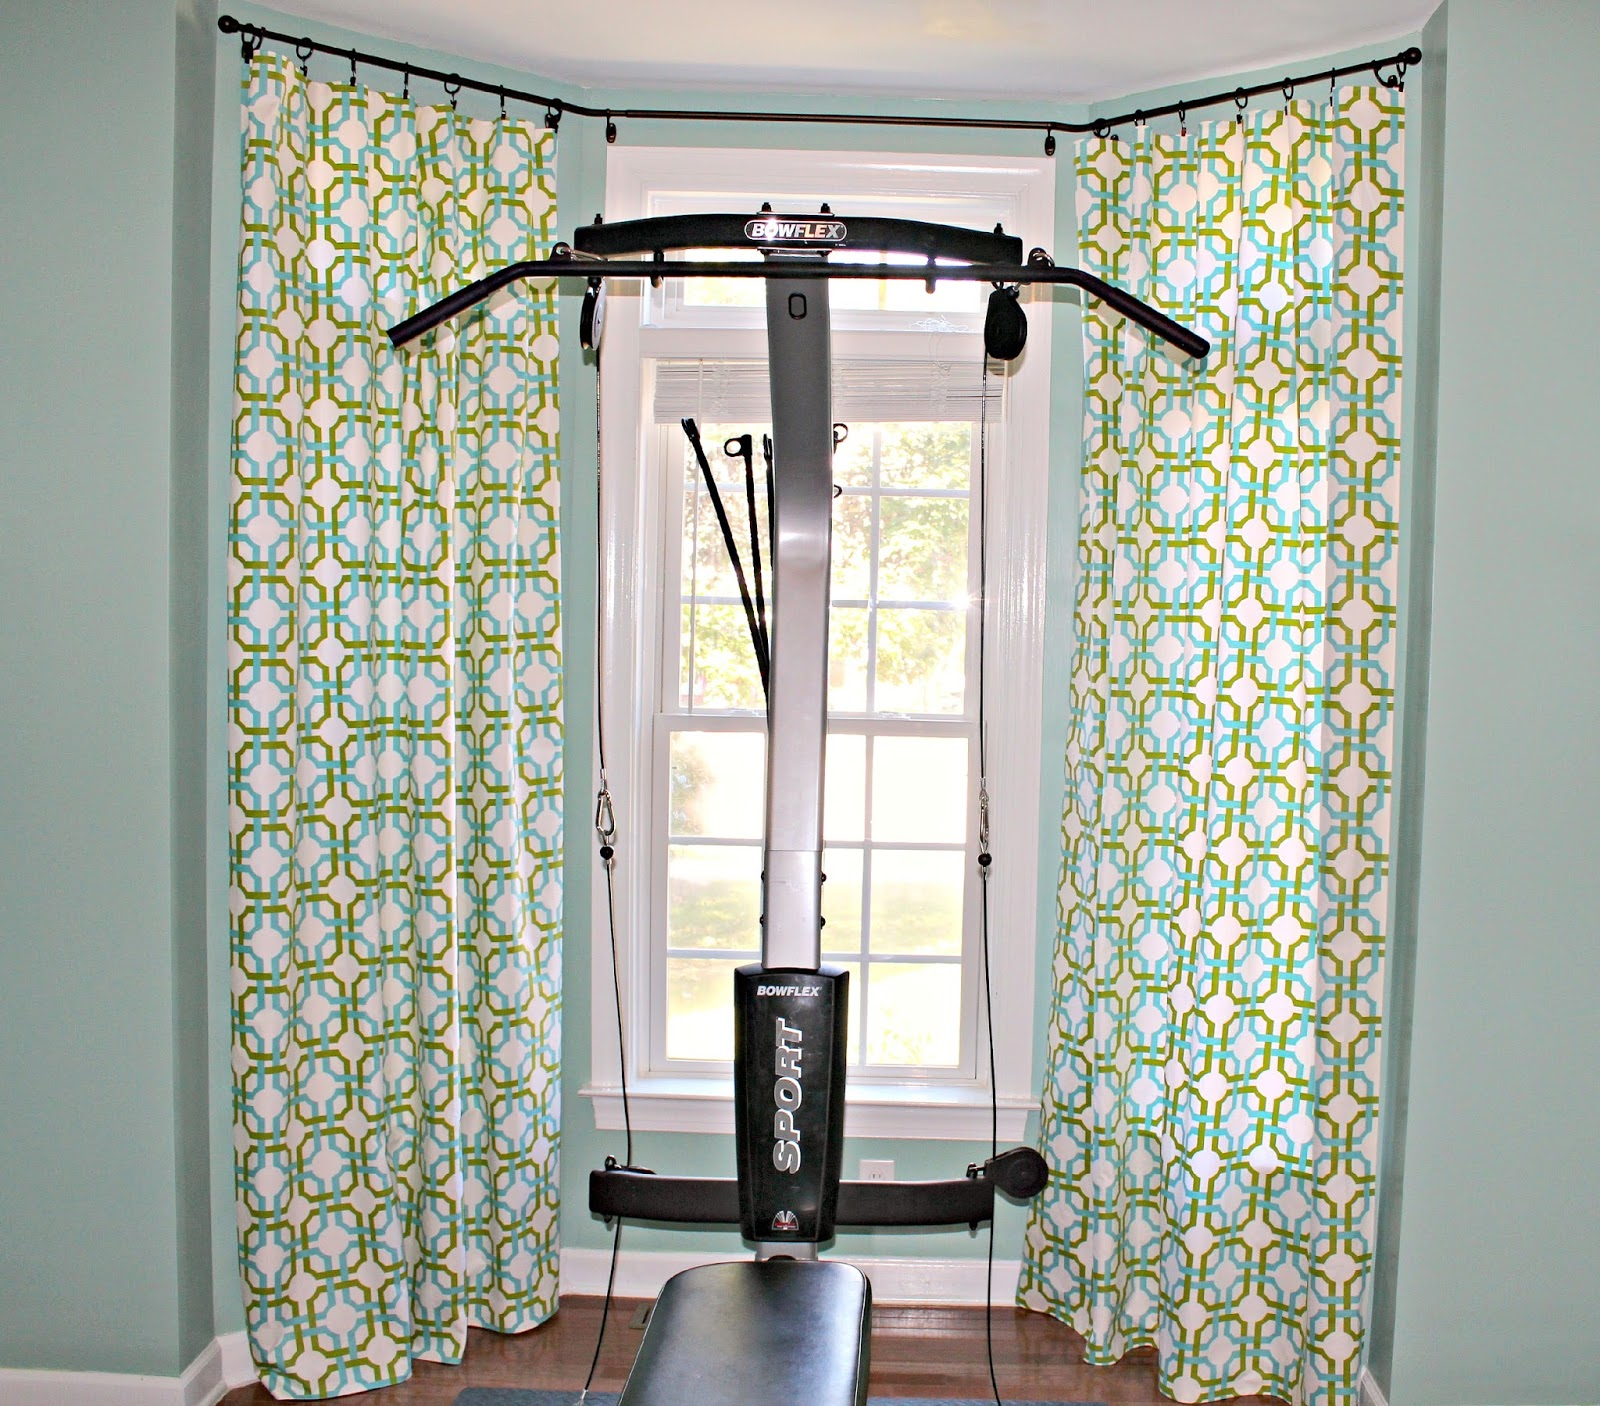 carolina on my mind home gym waverly groovy grille no sew curtains. Black Bedroom Furniture Sets. Home Design Ideas